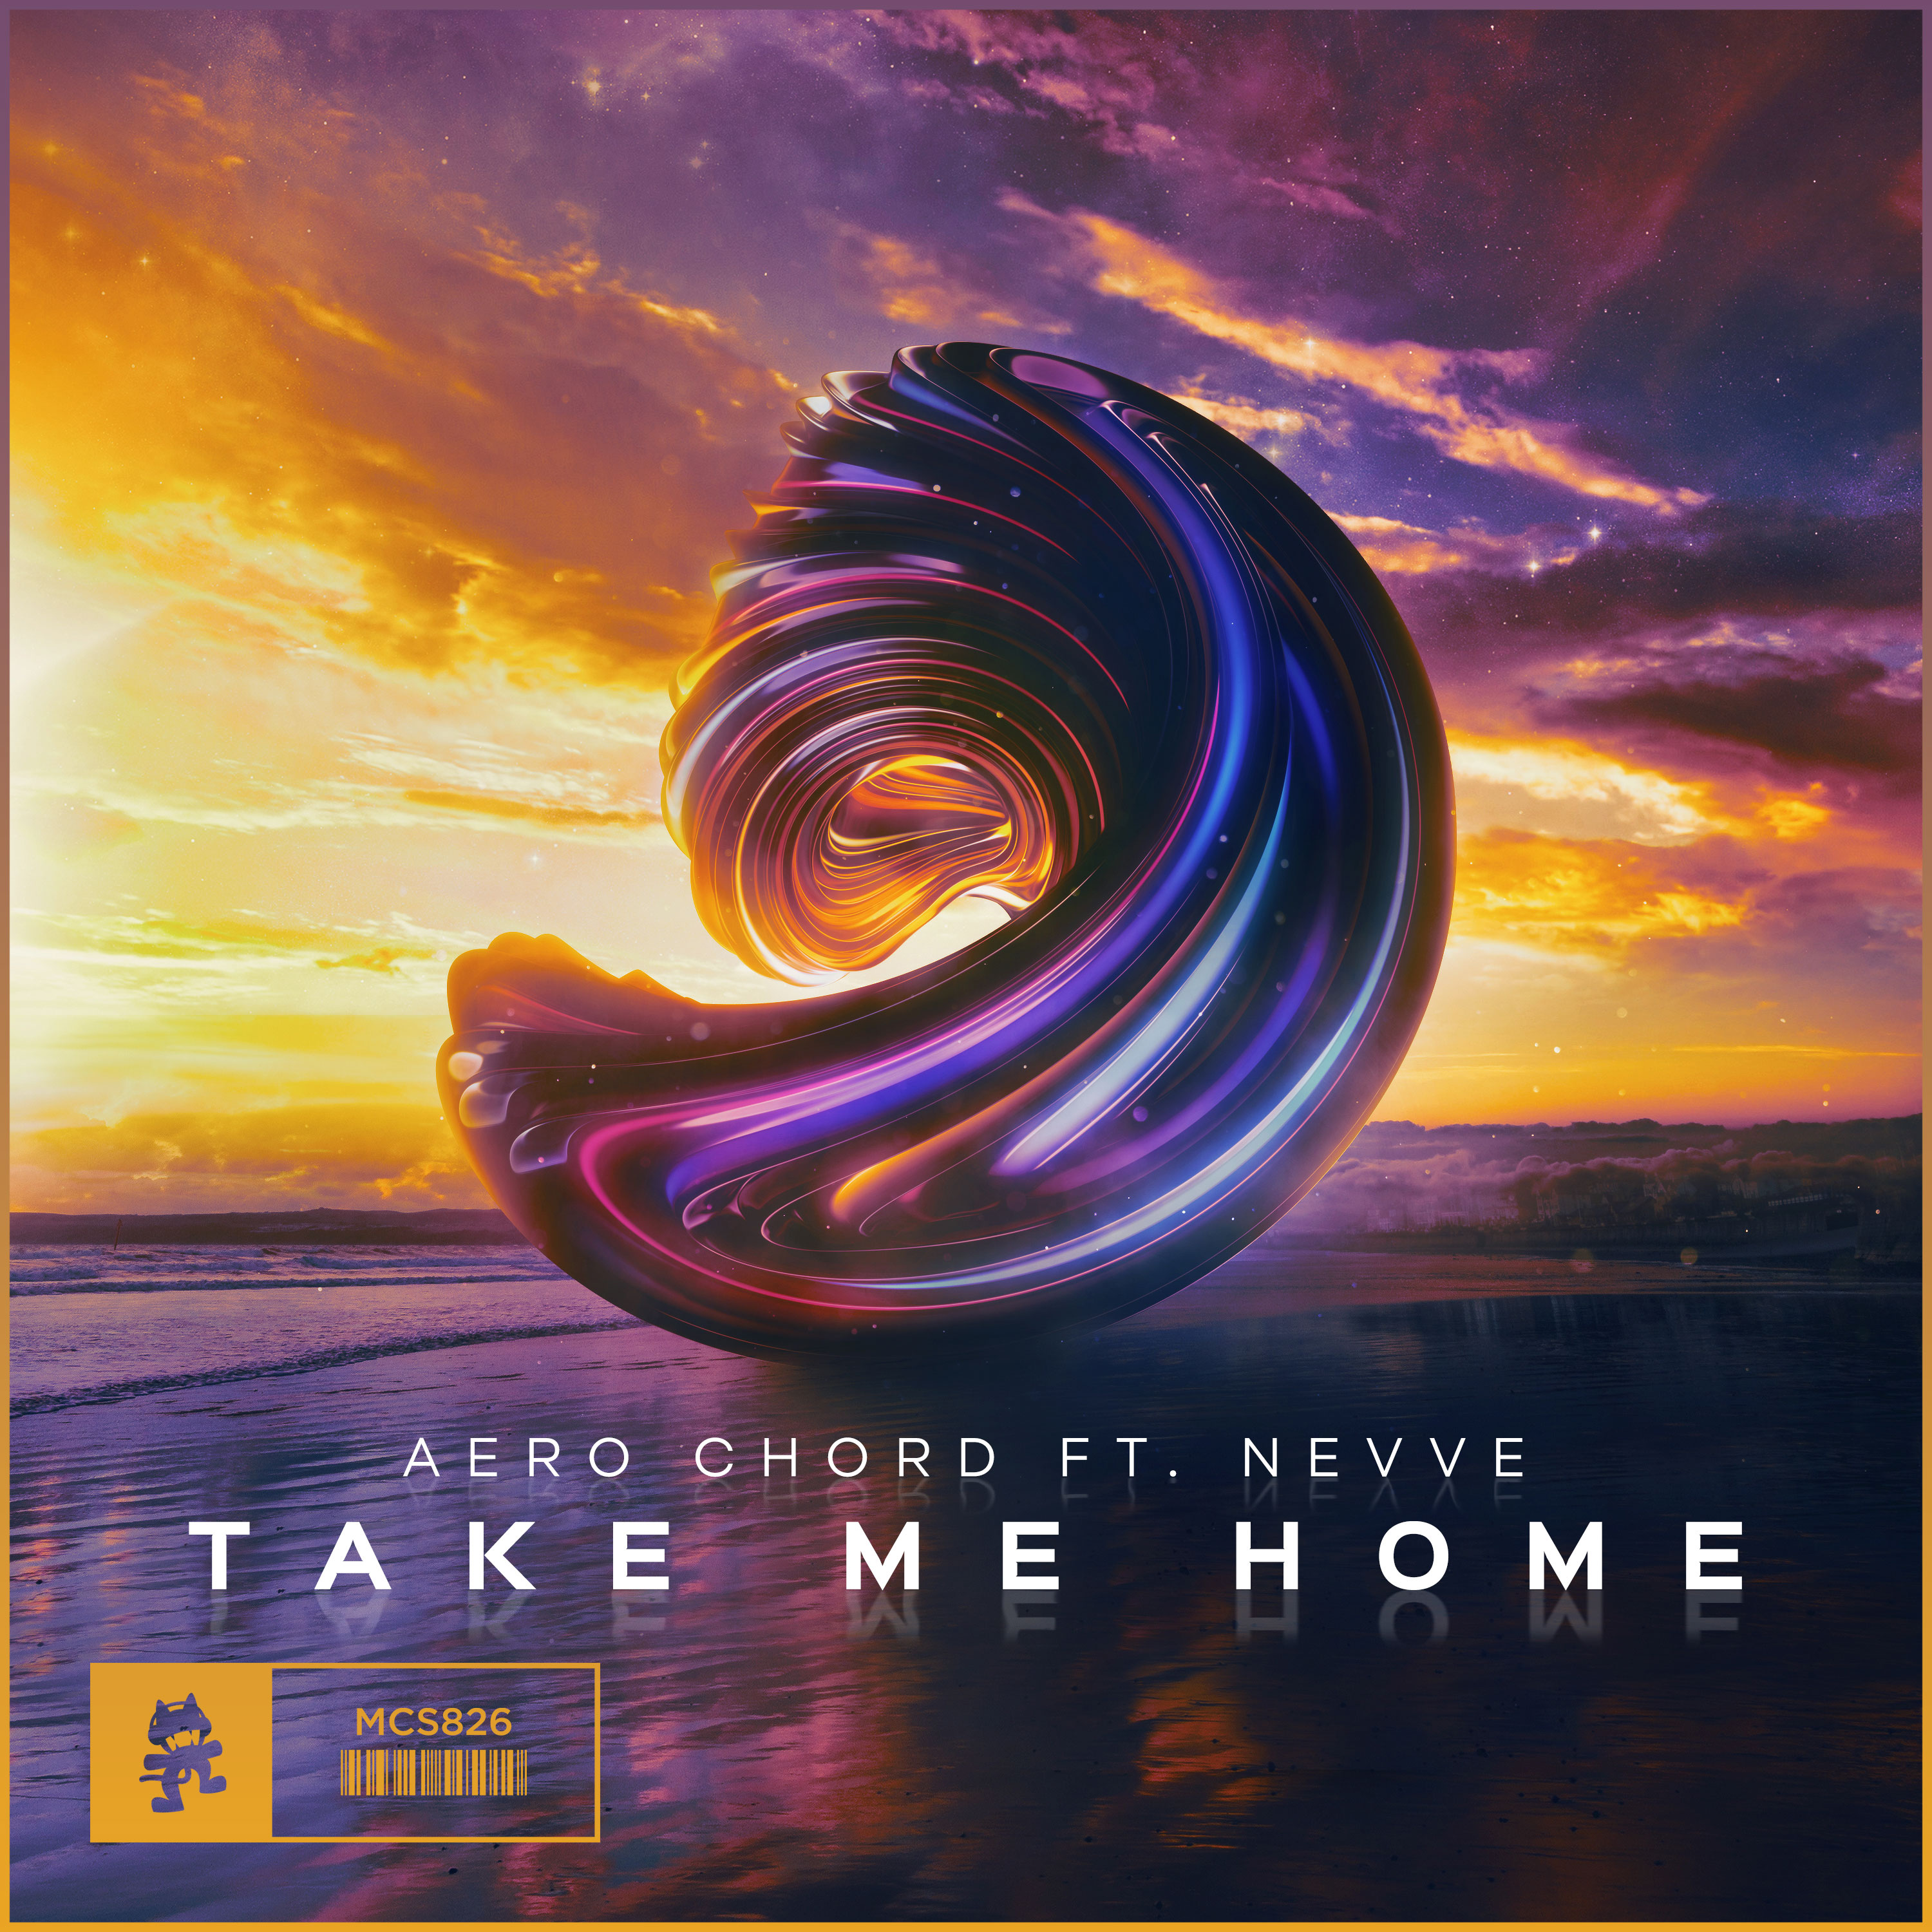 Aero Chord feat. Nevve - Take Me Home